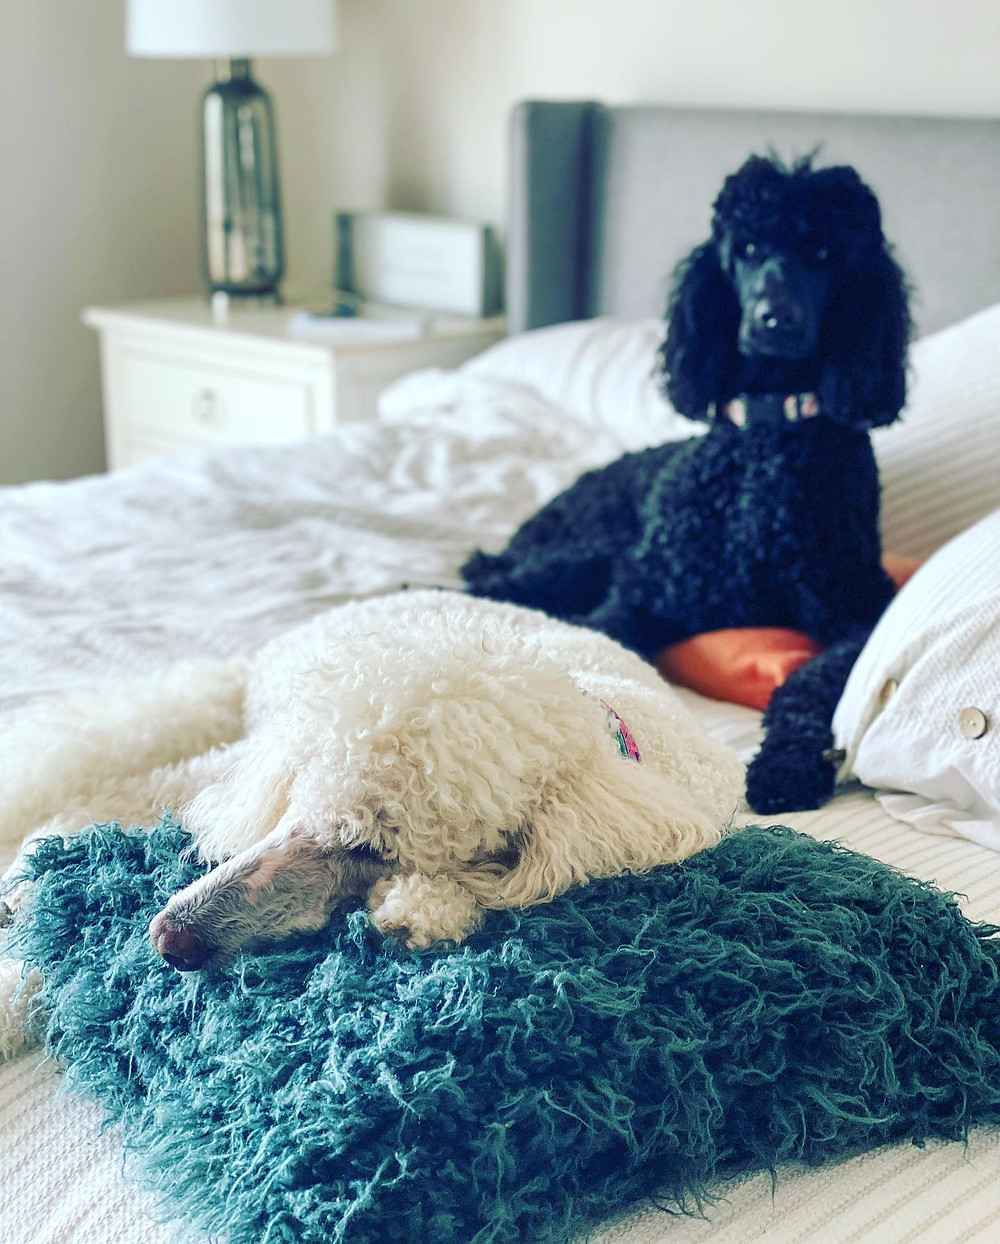 Poodles, dogs, spoiled, home decor